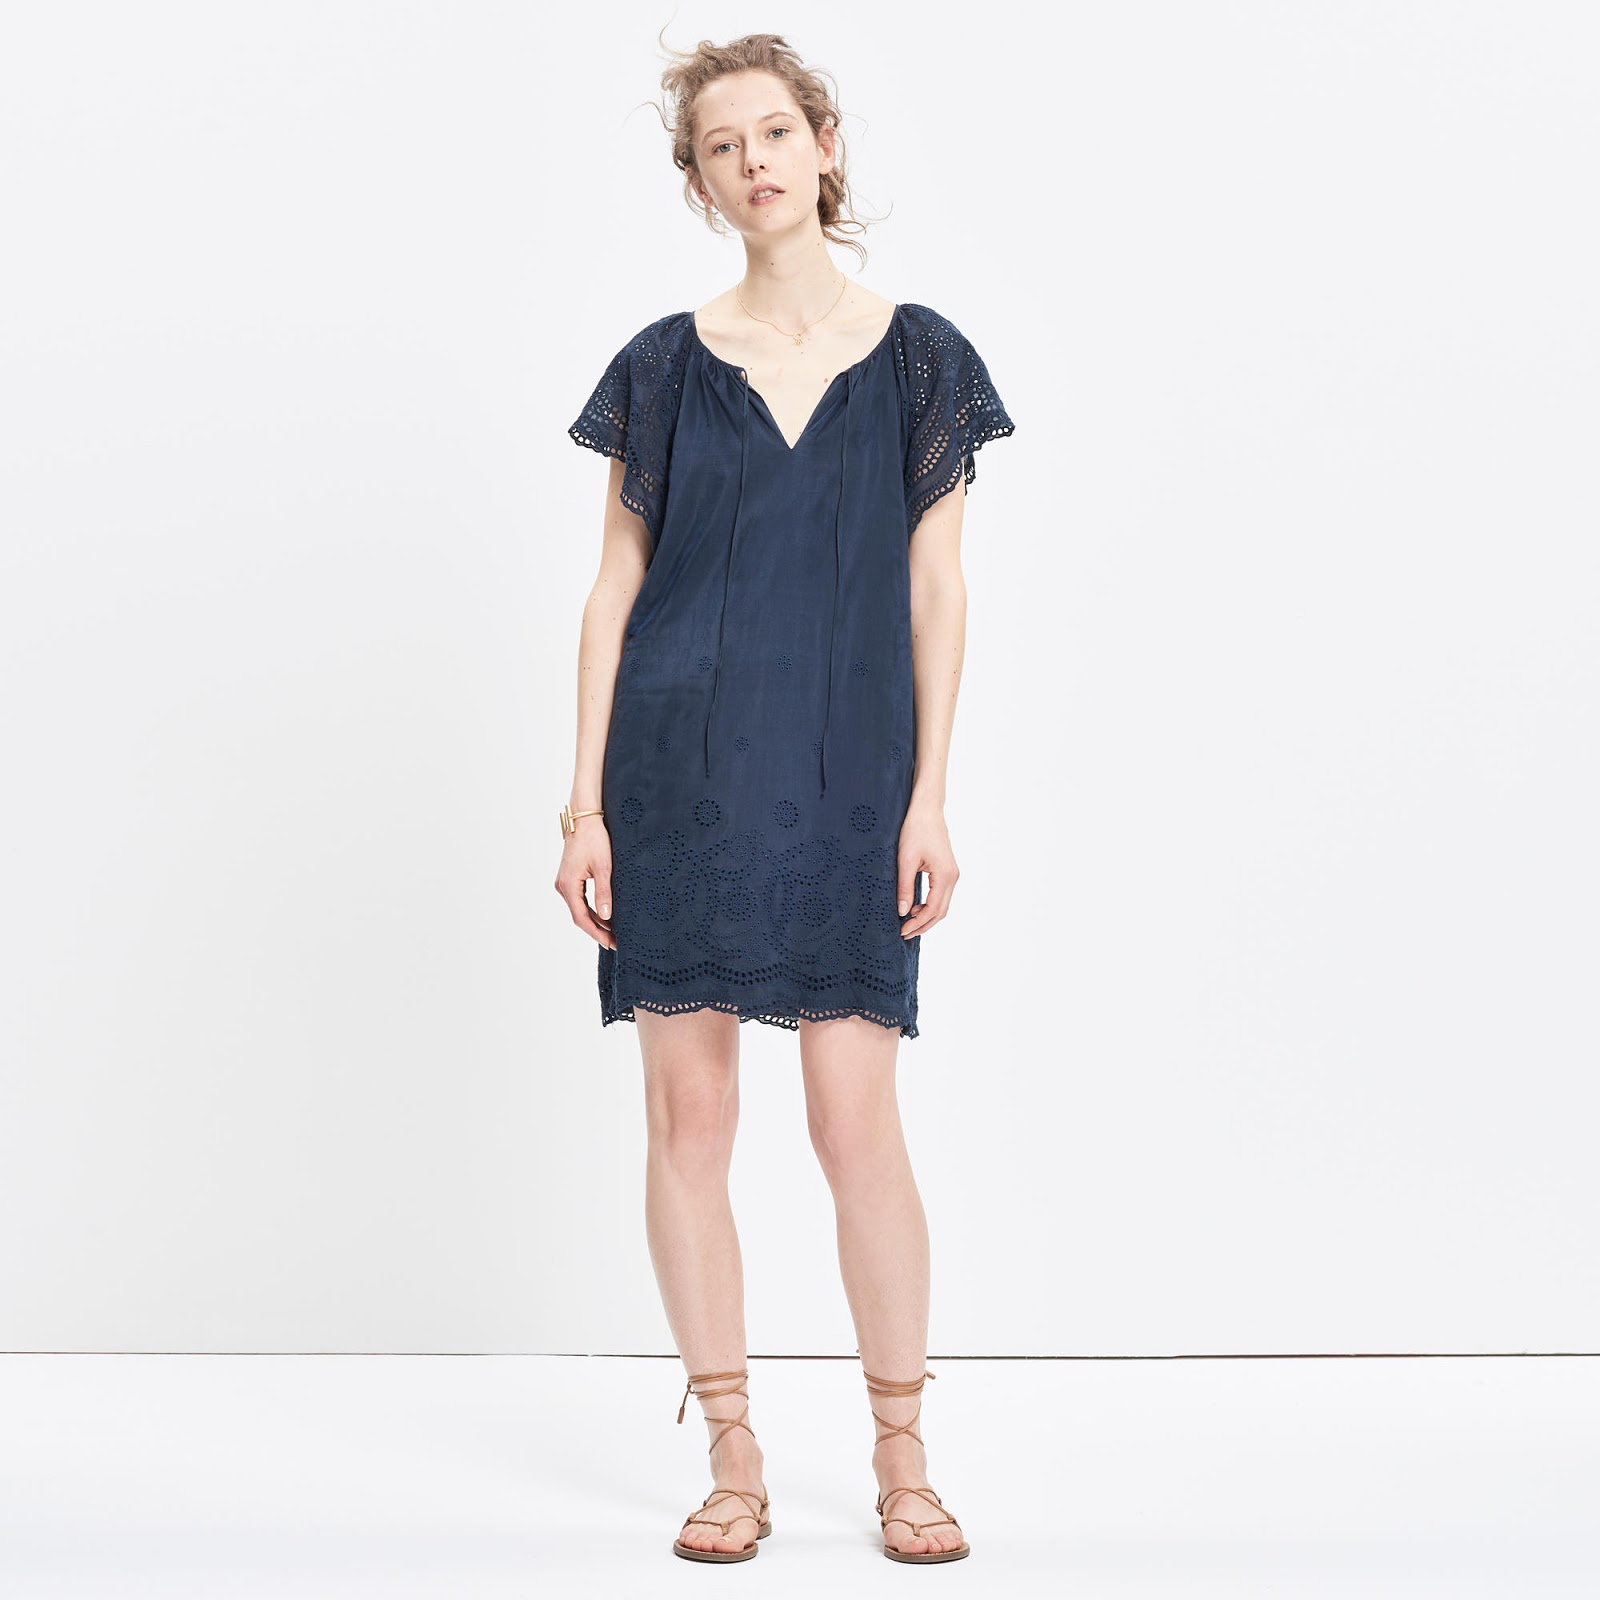 Madewell embroidered eyelet dress